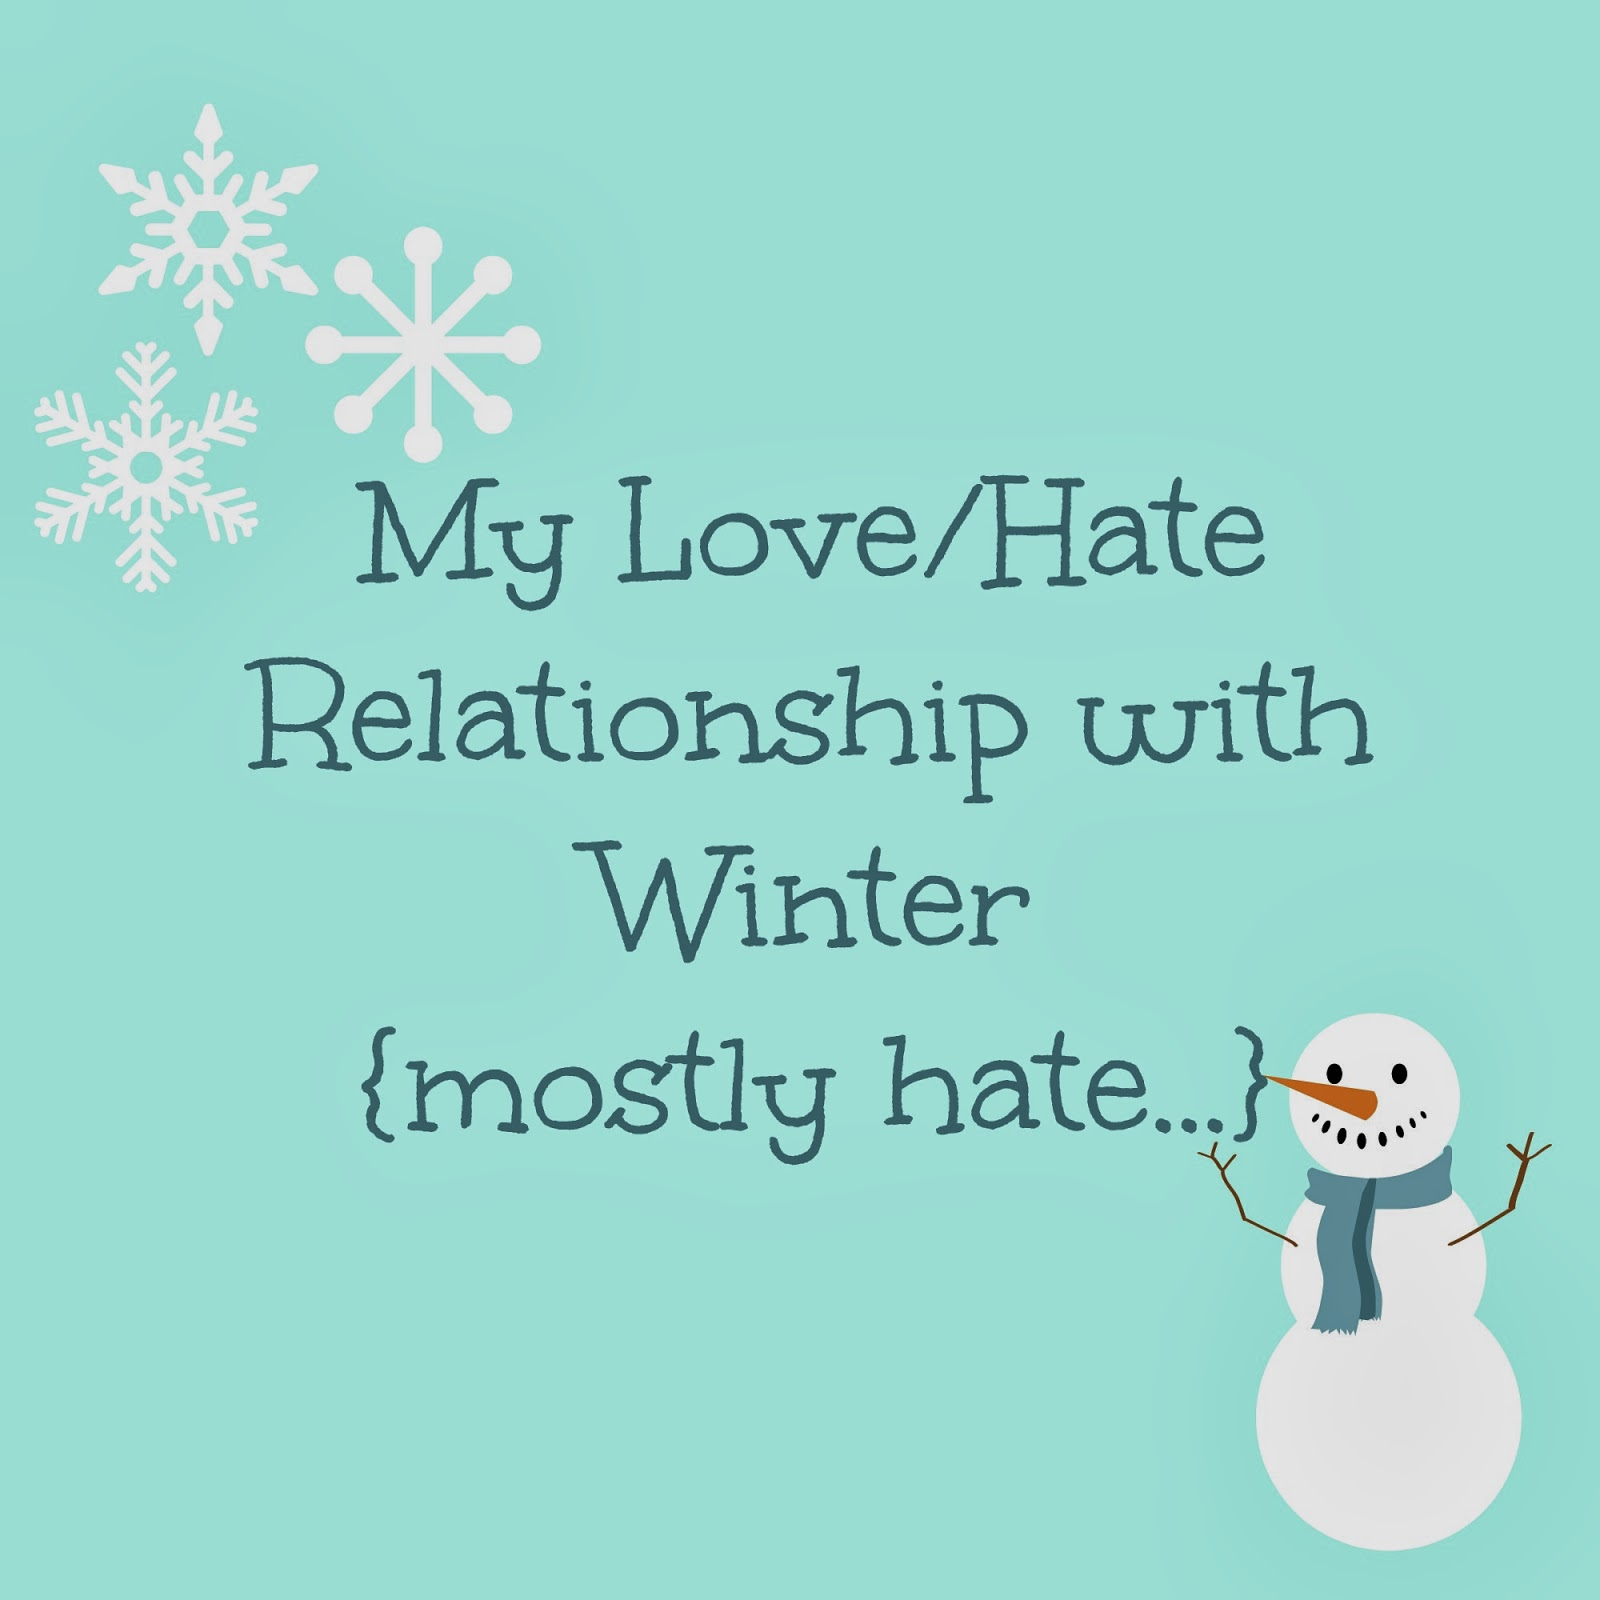 #TuesdayTen: Things I Love/Hate About Winter